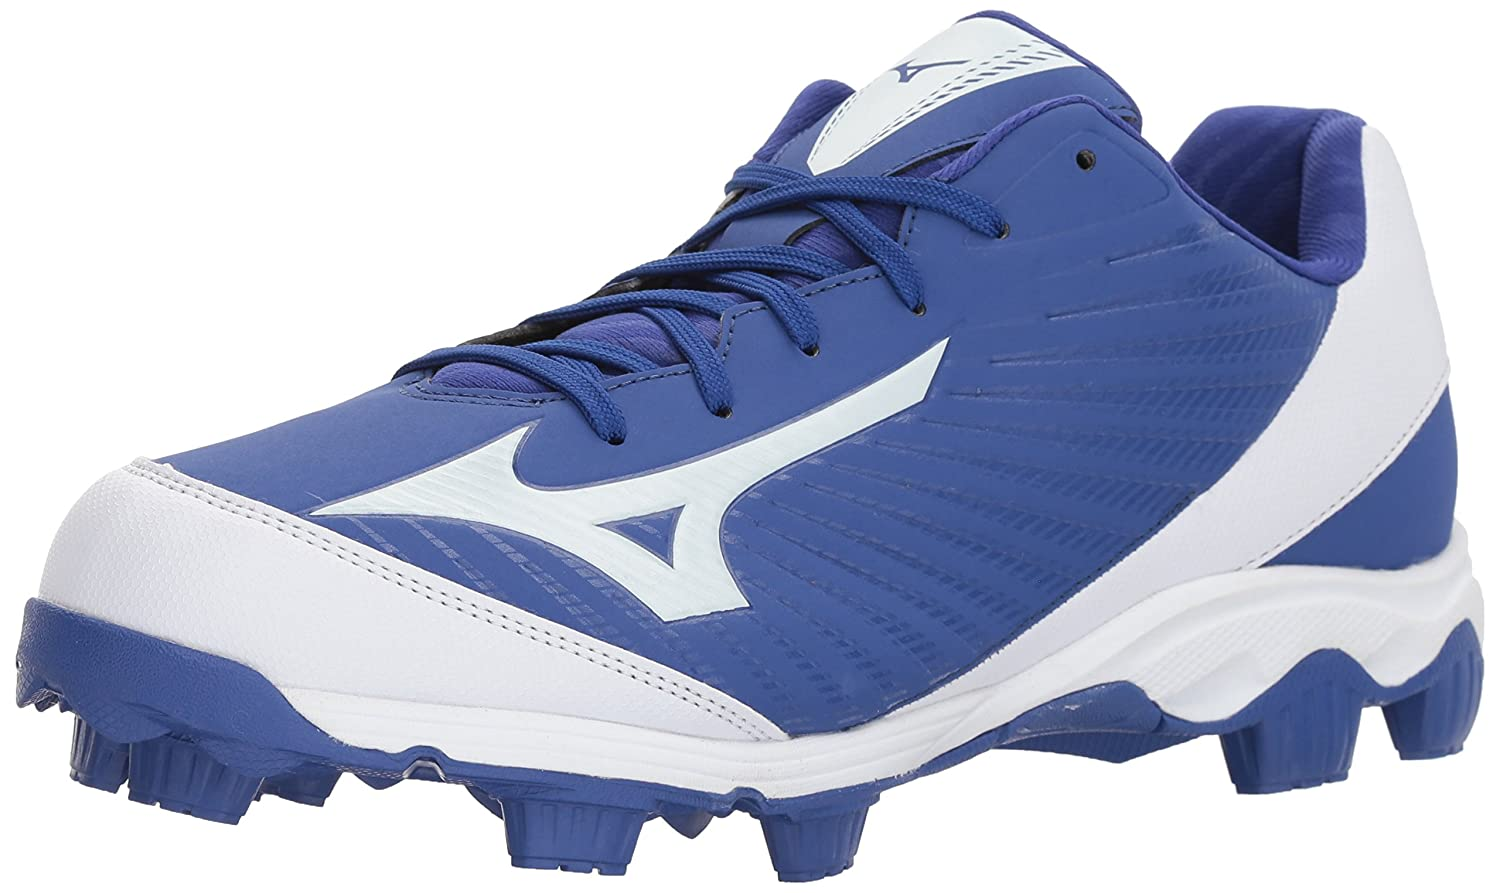 Mizuno (MIZD9) メンズ 9-Spike Advanced Franchise 9 Molded Baseball Cleat Low B071ZZDNLS 10.5 D US|ロイヤル/ホワイト ロイヤル/ホワイト 10.5 D US